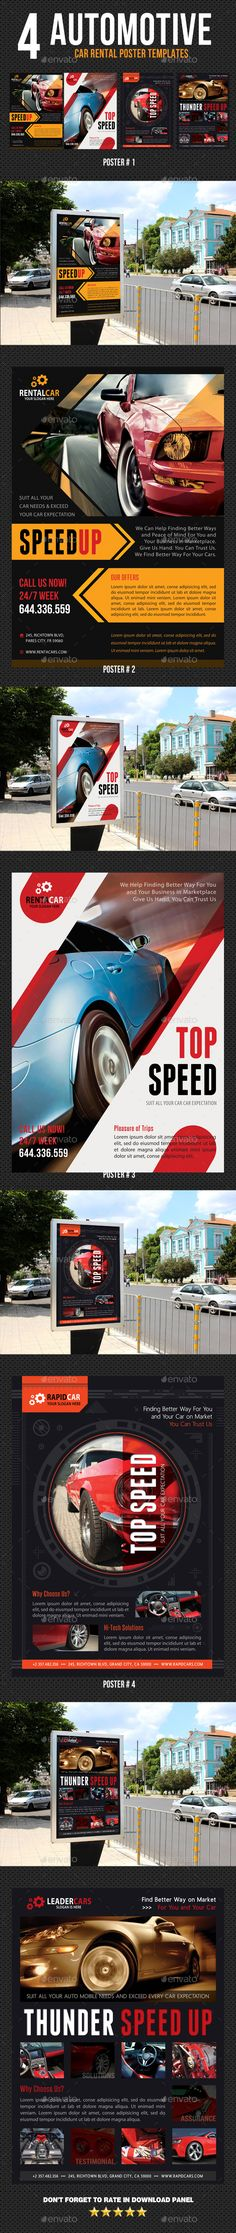 4 Automotive Car Rental Poster Template PSD Bundle. Download here: http://graphicriver.net/item/4-automotive-car-rental-poster-bundle-02/15499649?ref=ksioks